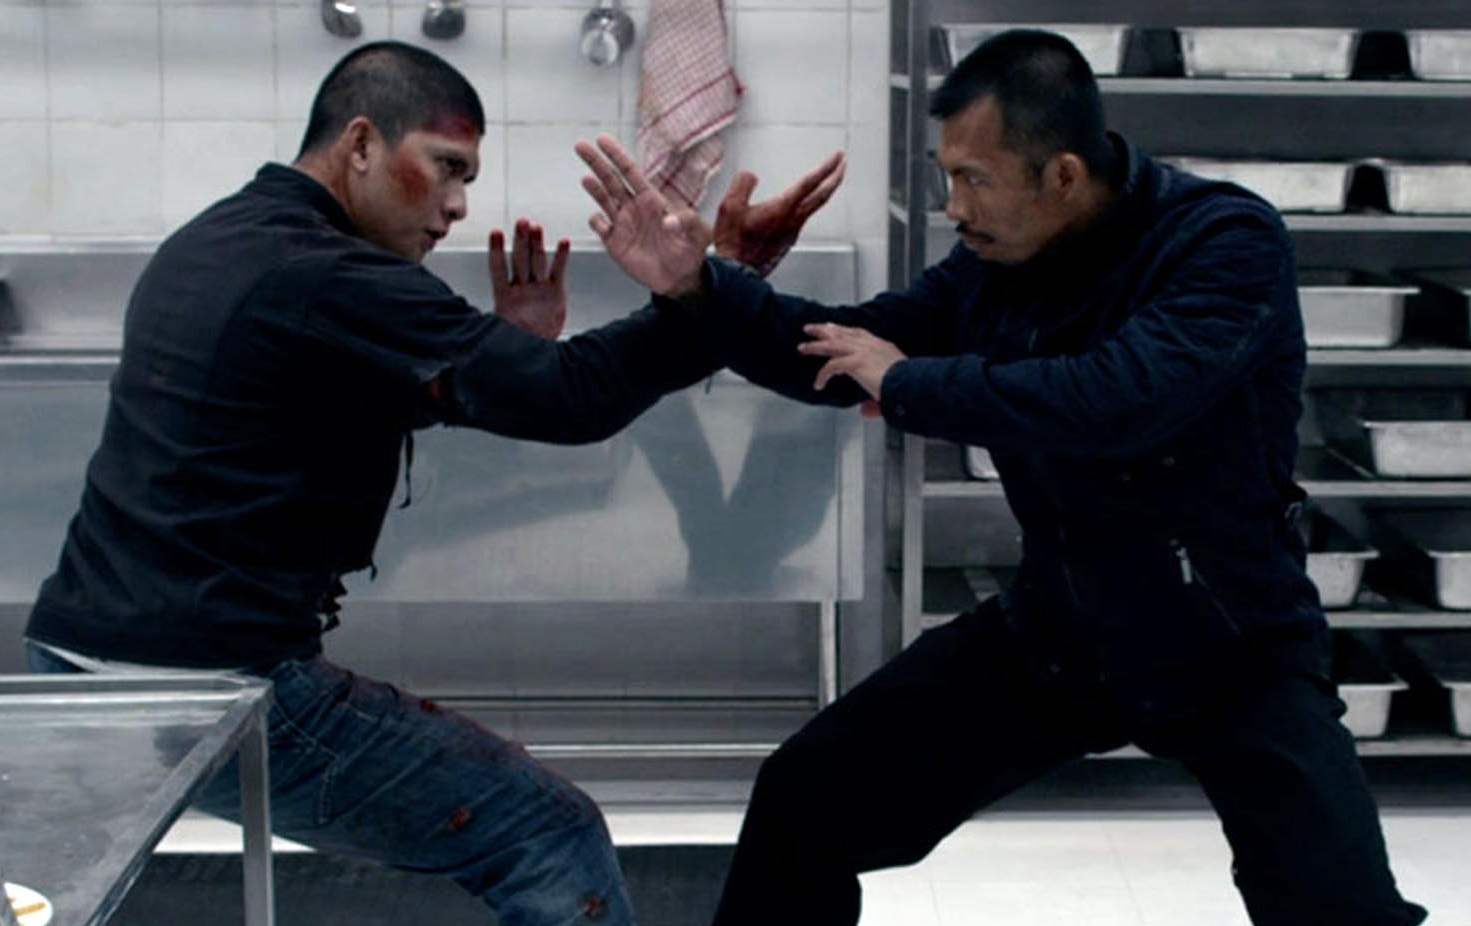 Rama and foe get into an epic an elaborate fight scene in a kitchen in The Raid 2.